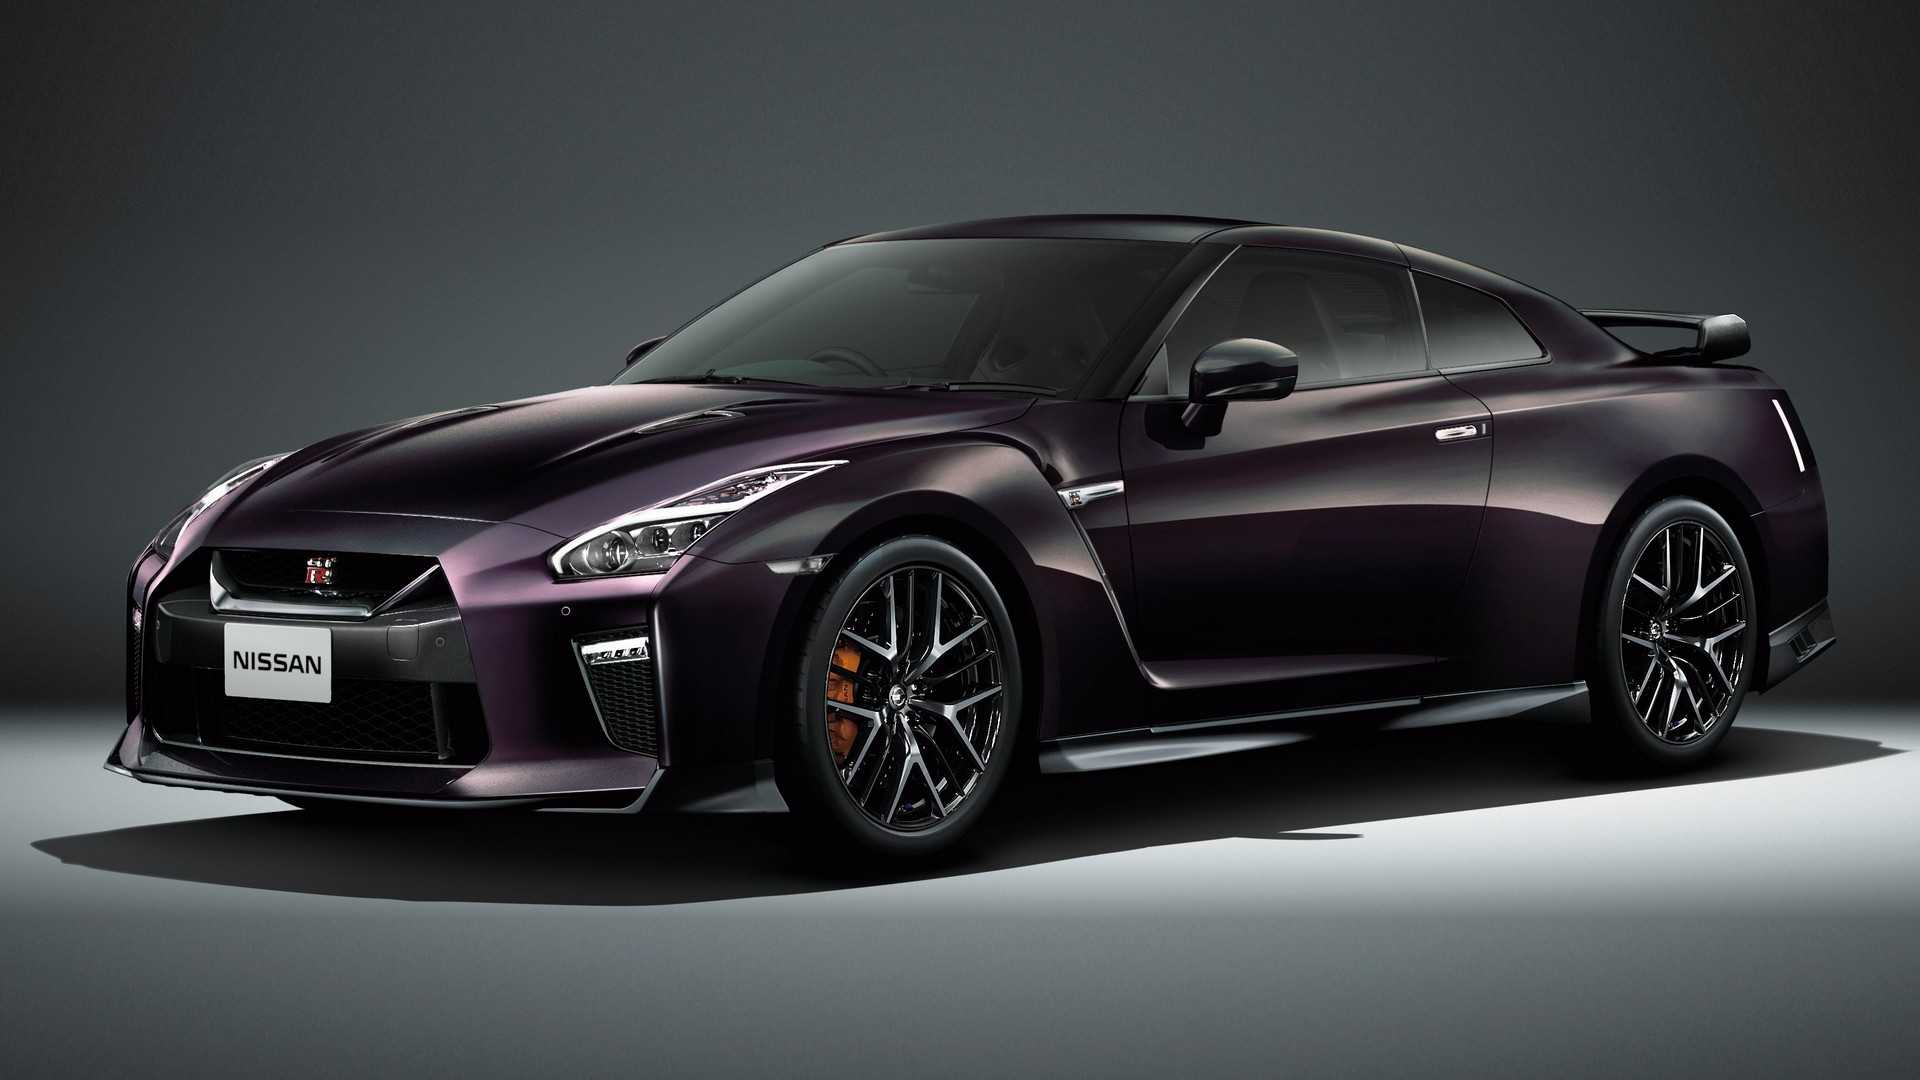 Nissan Gt R Special Edition For Japan Introduces Three New Colors